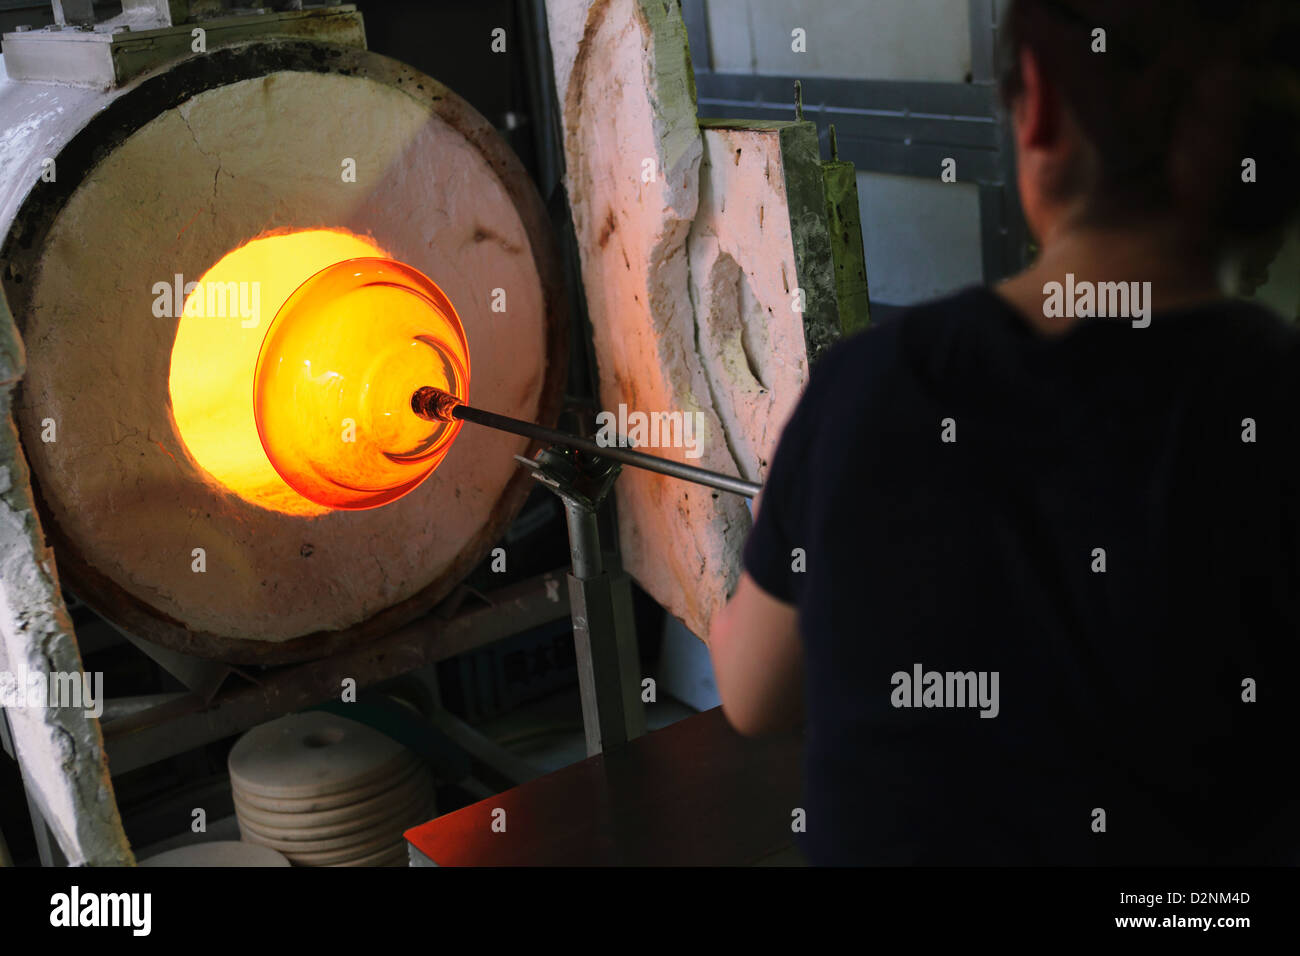 Glass blower at work - Stock Image